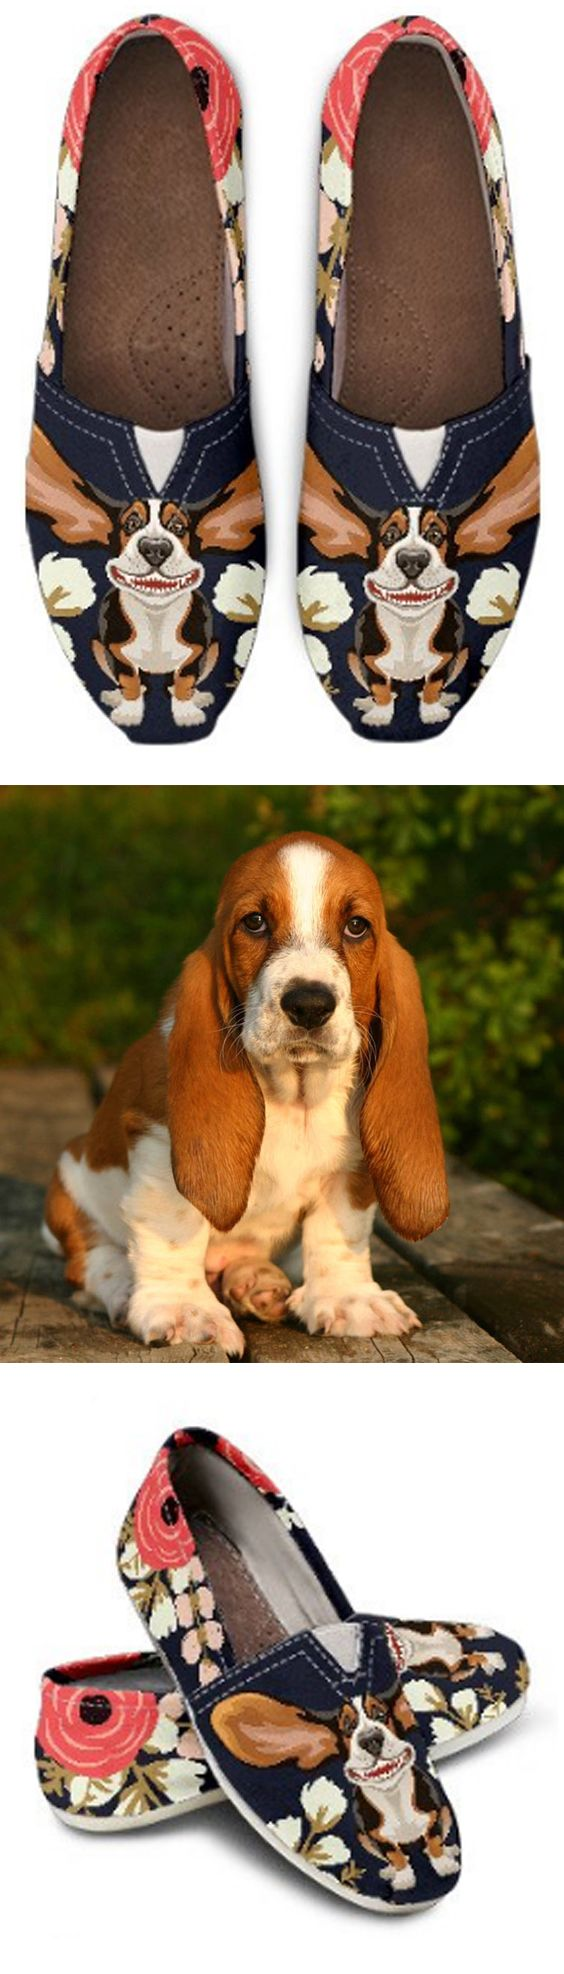 Floral Hound Casual Shoes | Basset hound, Shoe bag and Socks